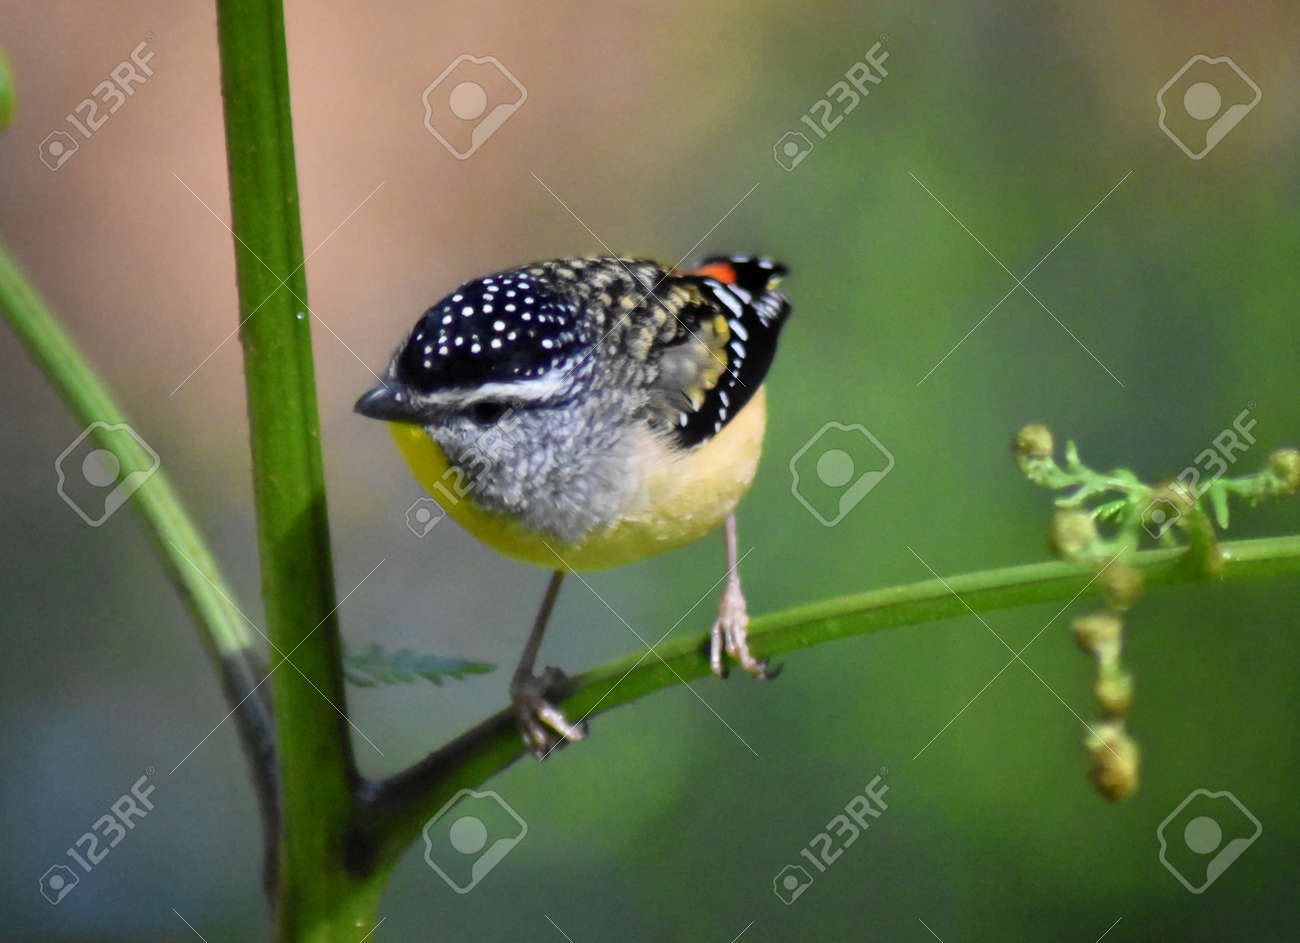 A close up of a Spotted Pardalote (Pardalotus punctatus) clinging to a fern stem Stock Photo - 93411975